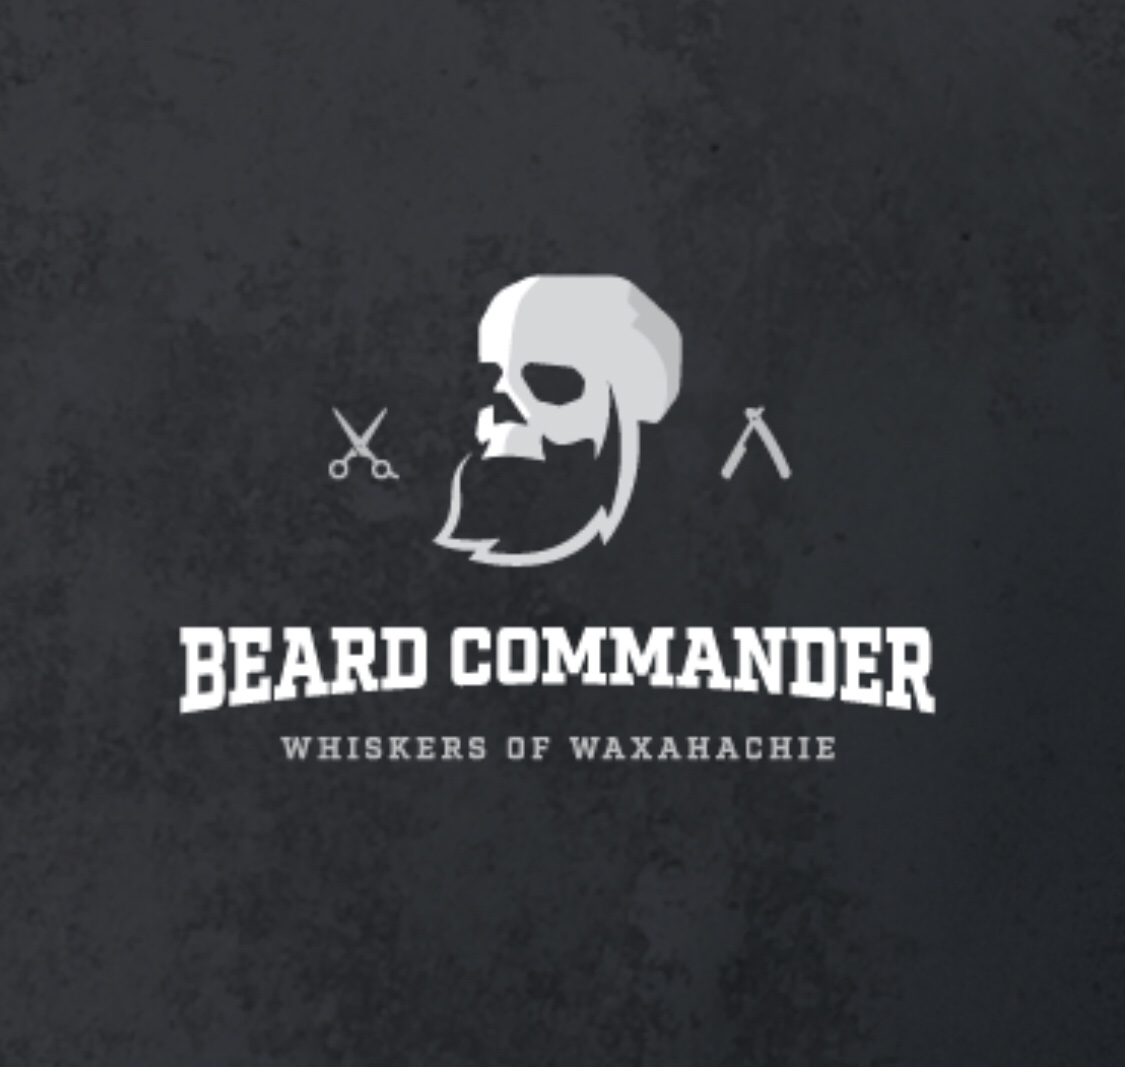 Our new beard club! Whiskers of waxahachie